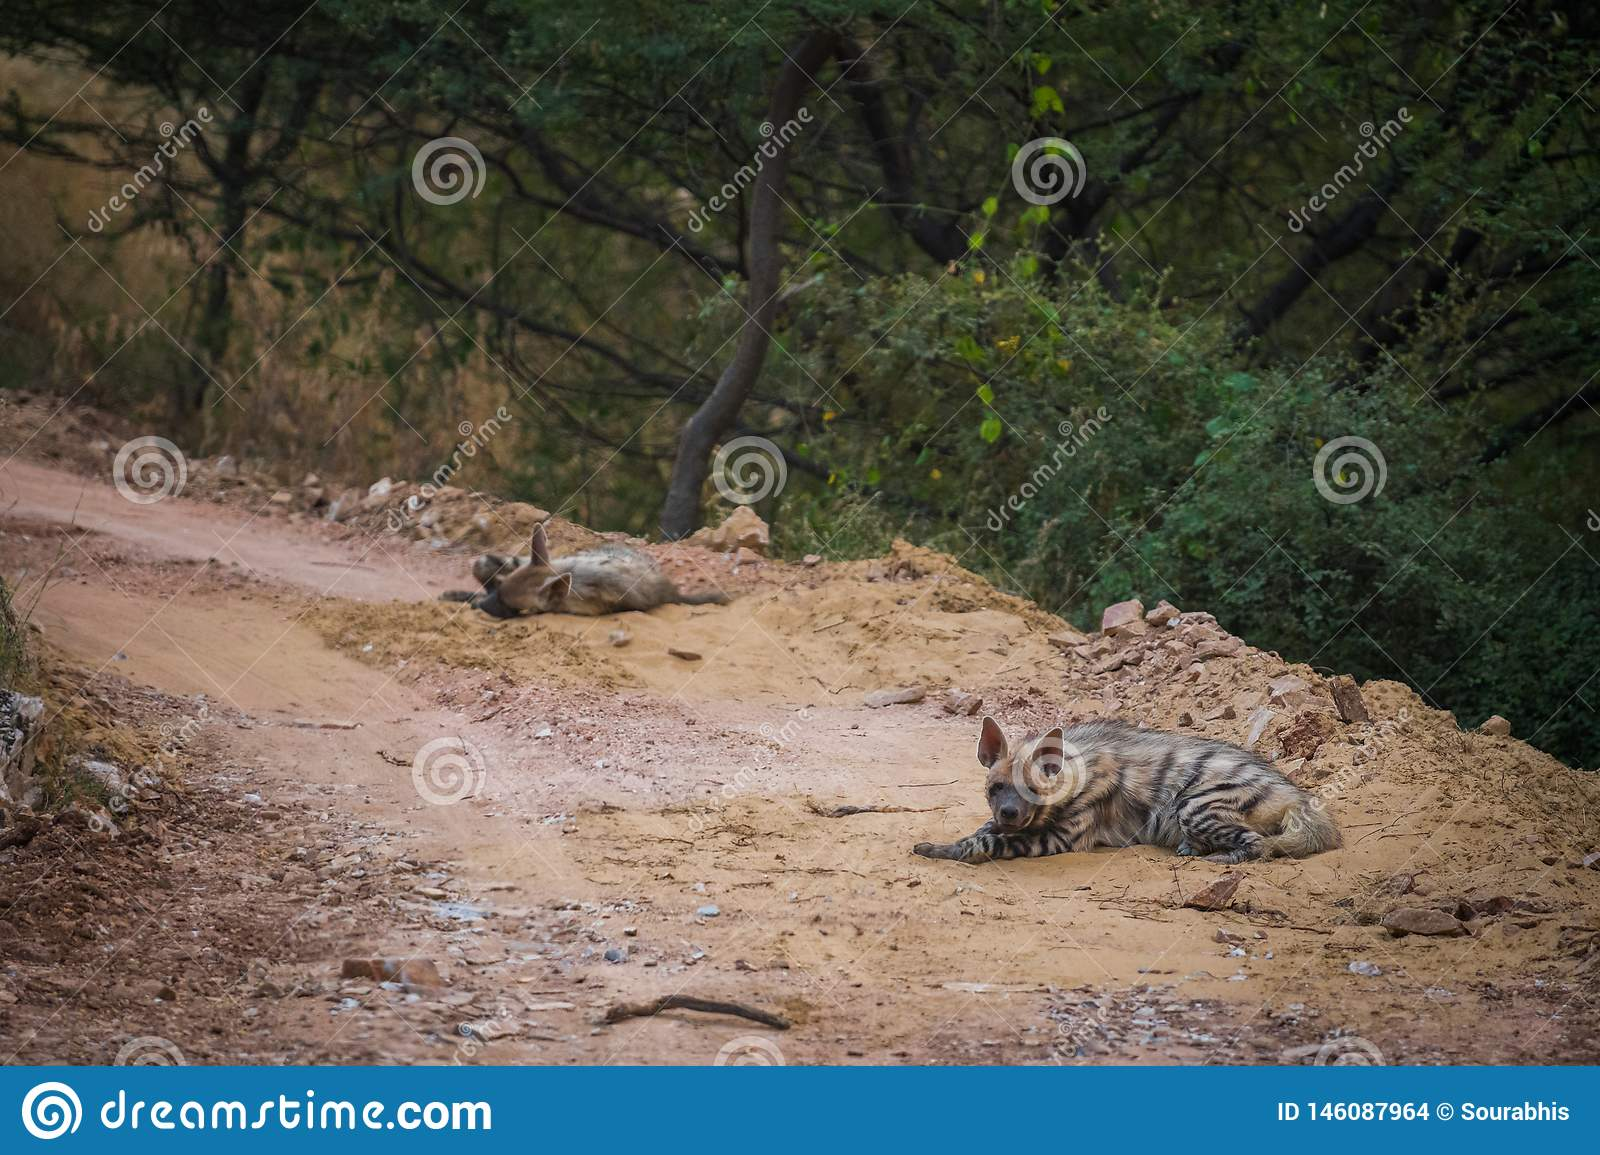 Striped hyena Hyaena hyaena pair closeup resting in a cool place and shade with green background